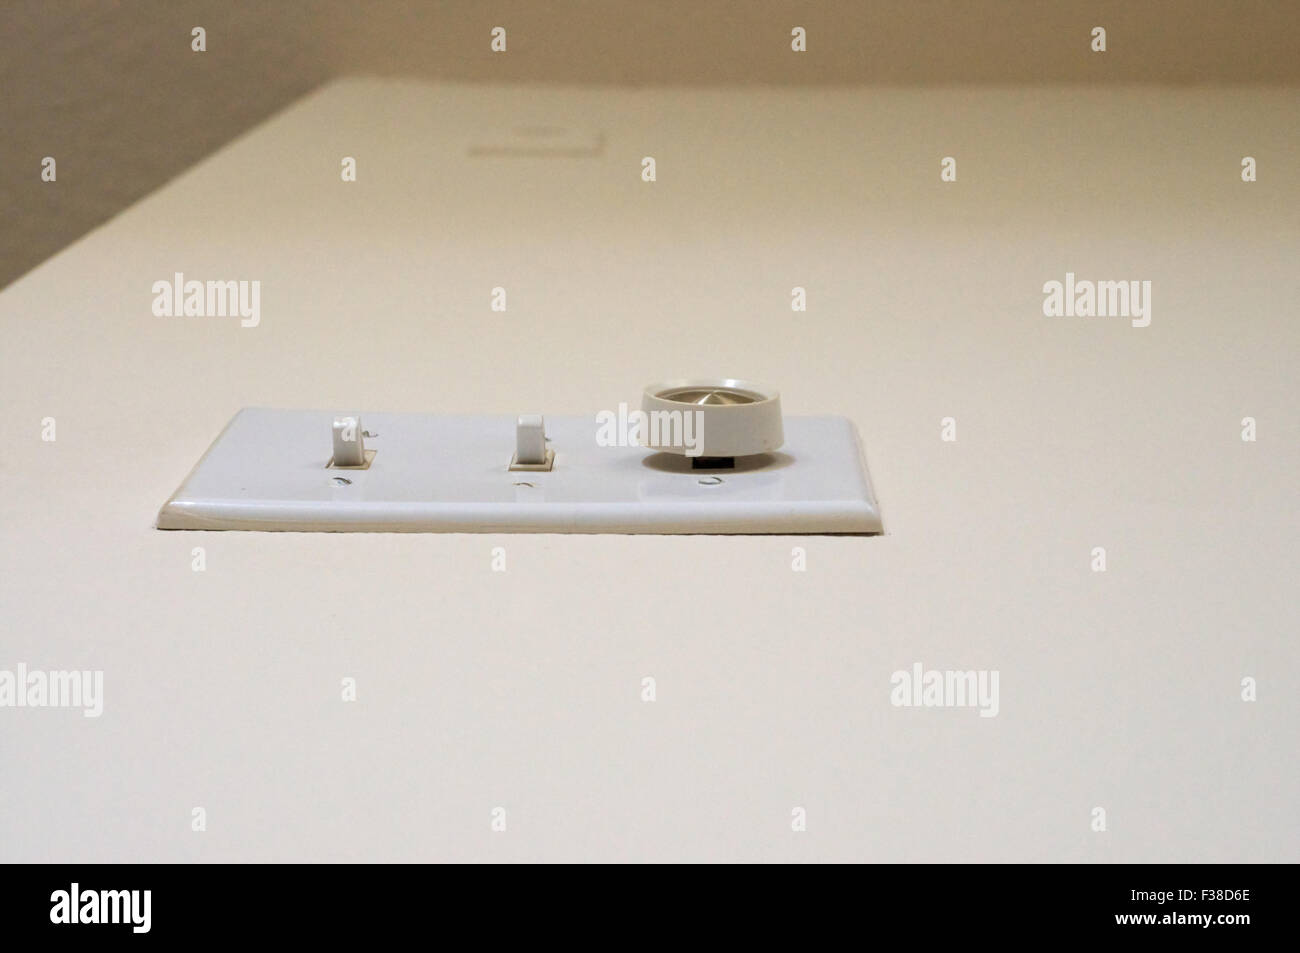 Looking up from the floor at a bank of light switches, two toggle switches, and one dimmer knob on empty light colored - Stock Image